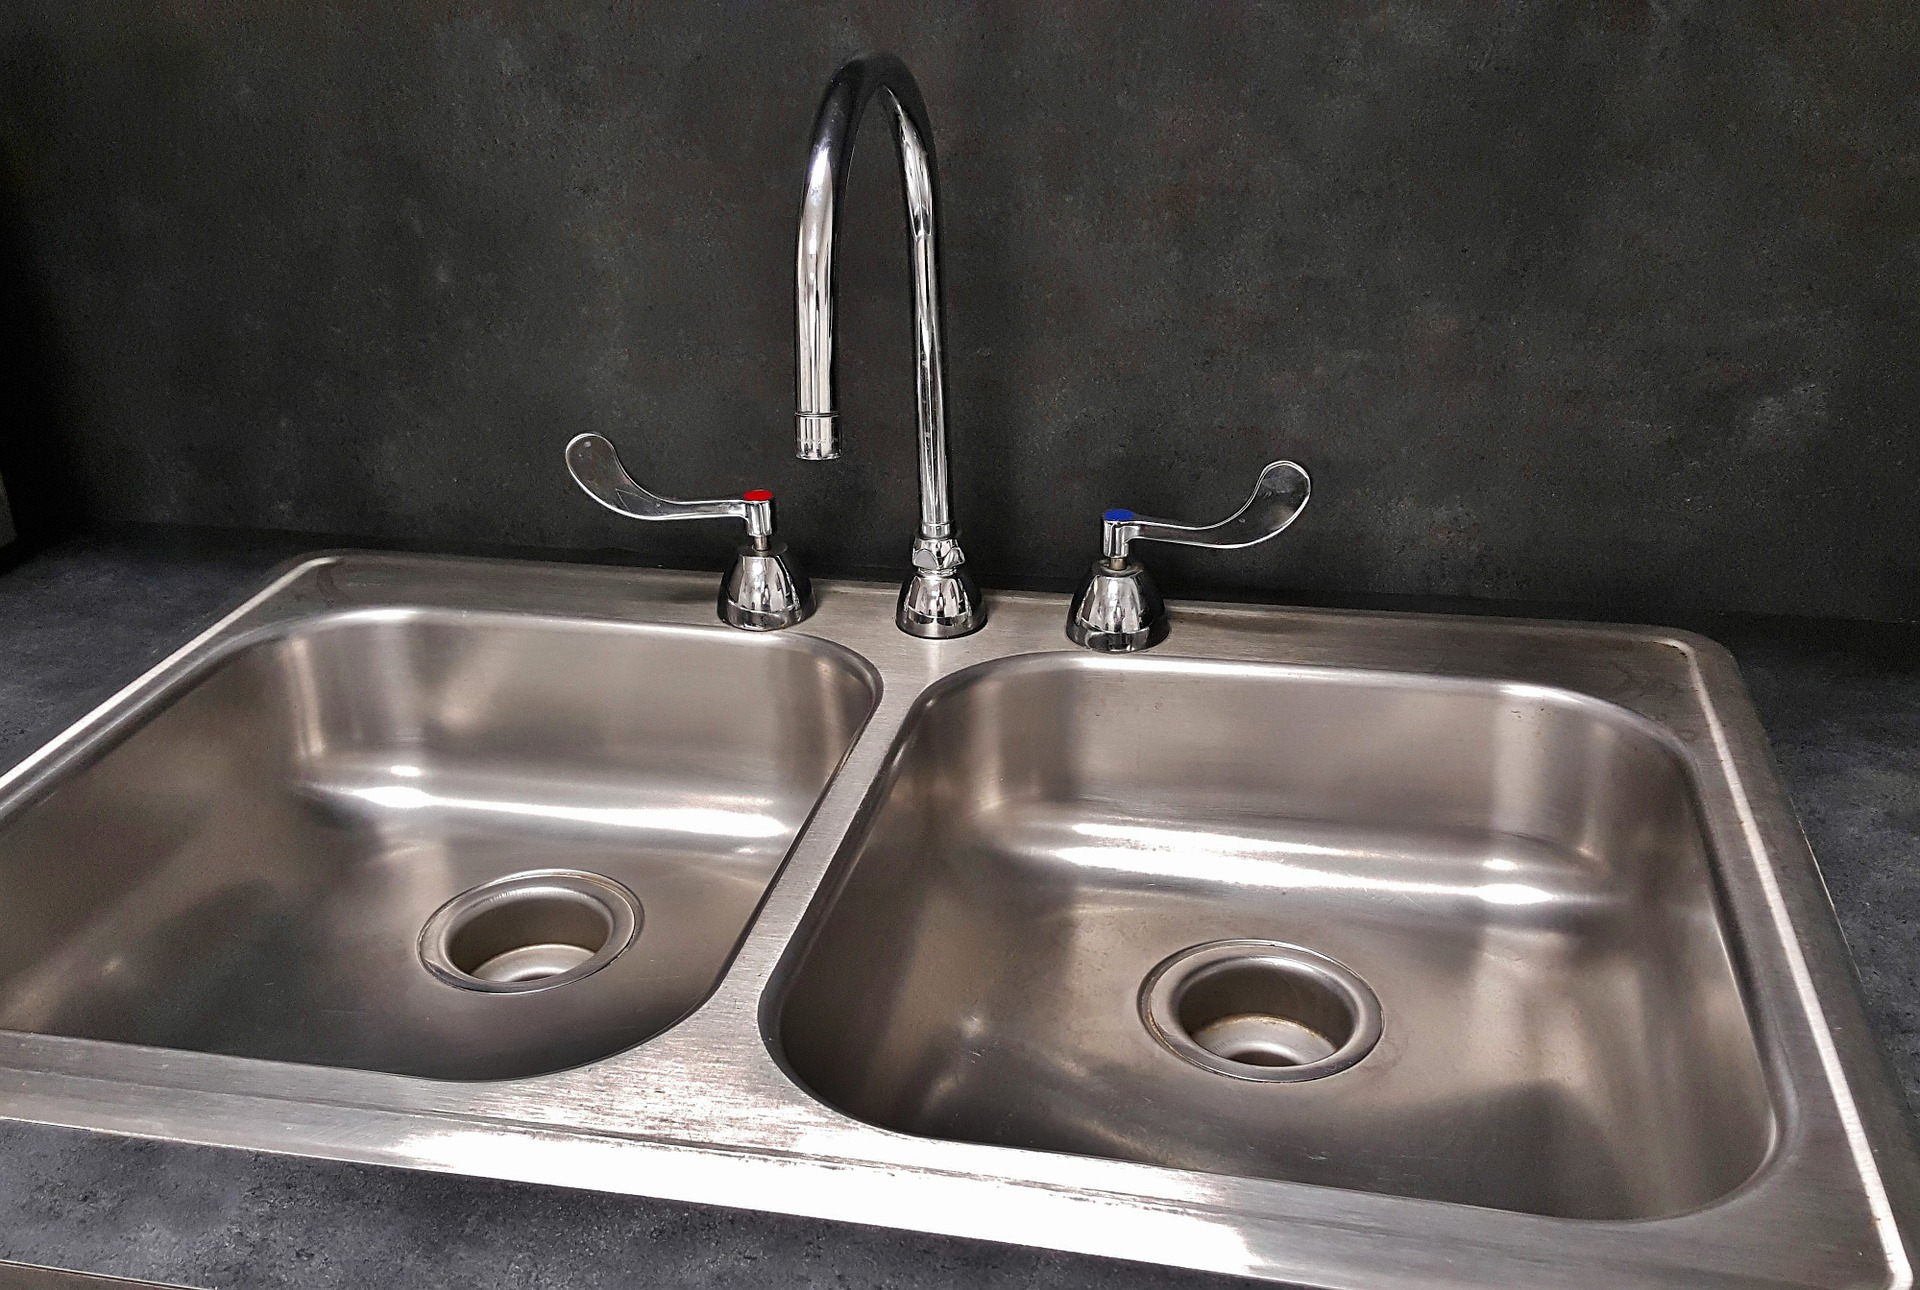 Plumber To Fit Sinks In London Handy Squad